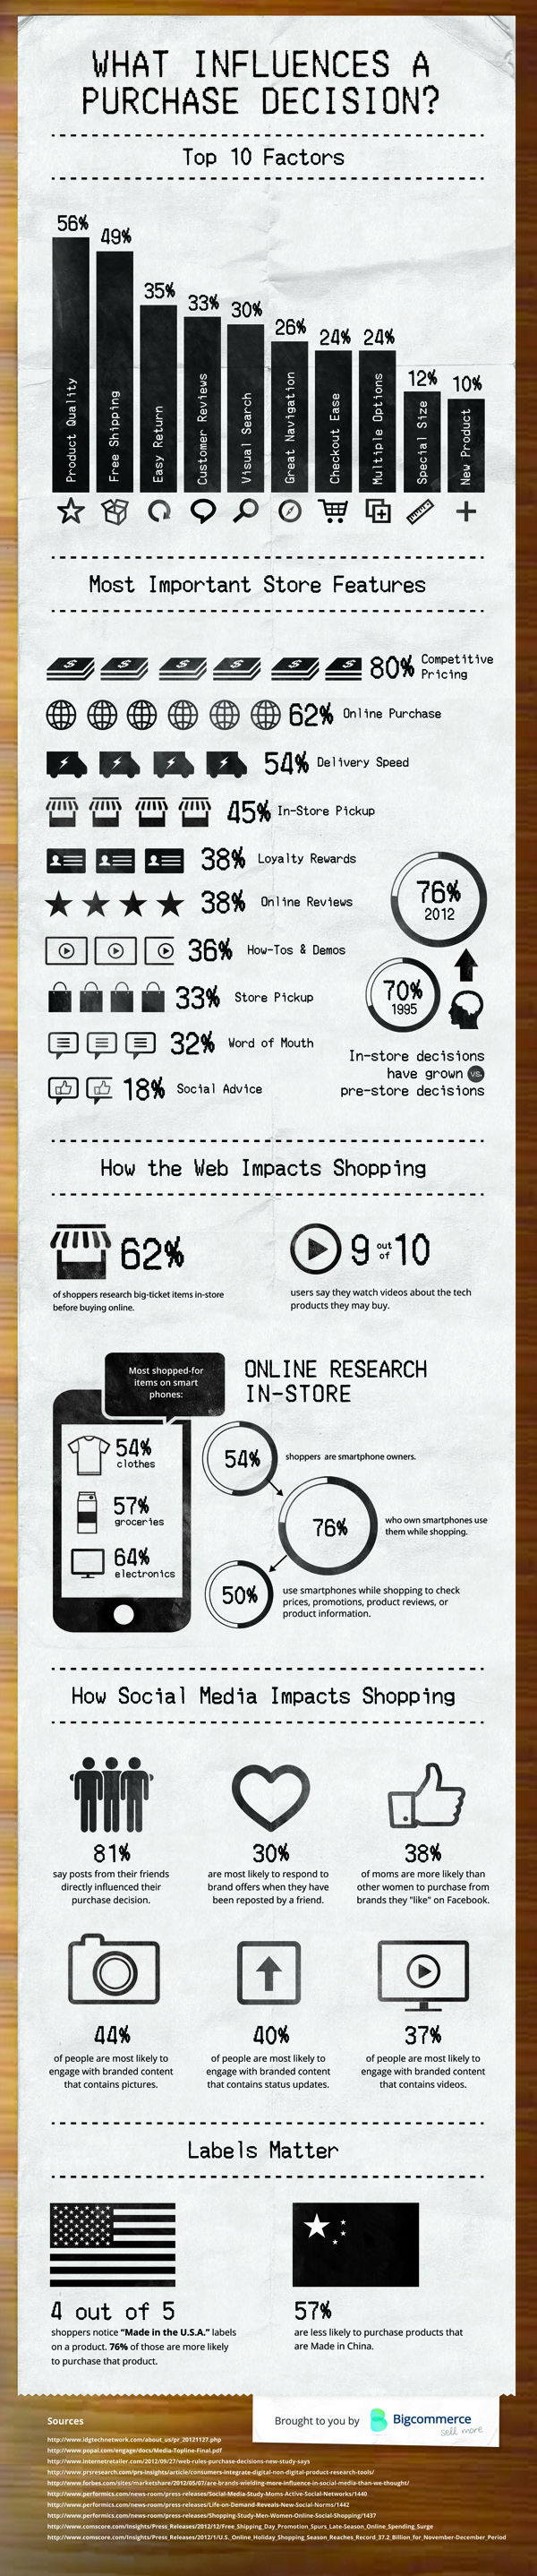 Top 10 Factors that Influence Purchase Decision [Infographic]